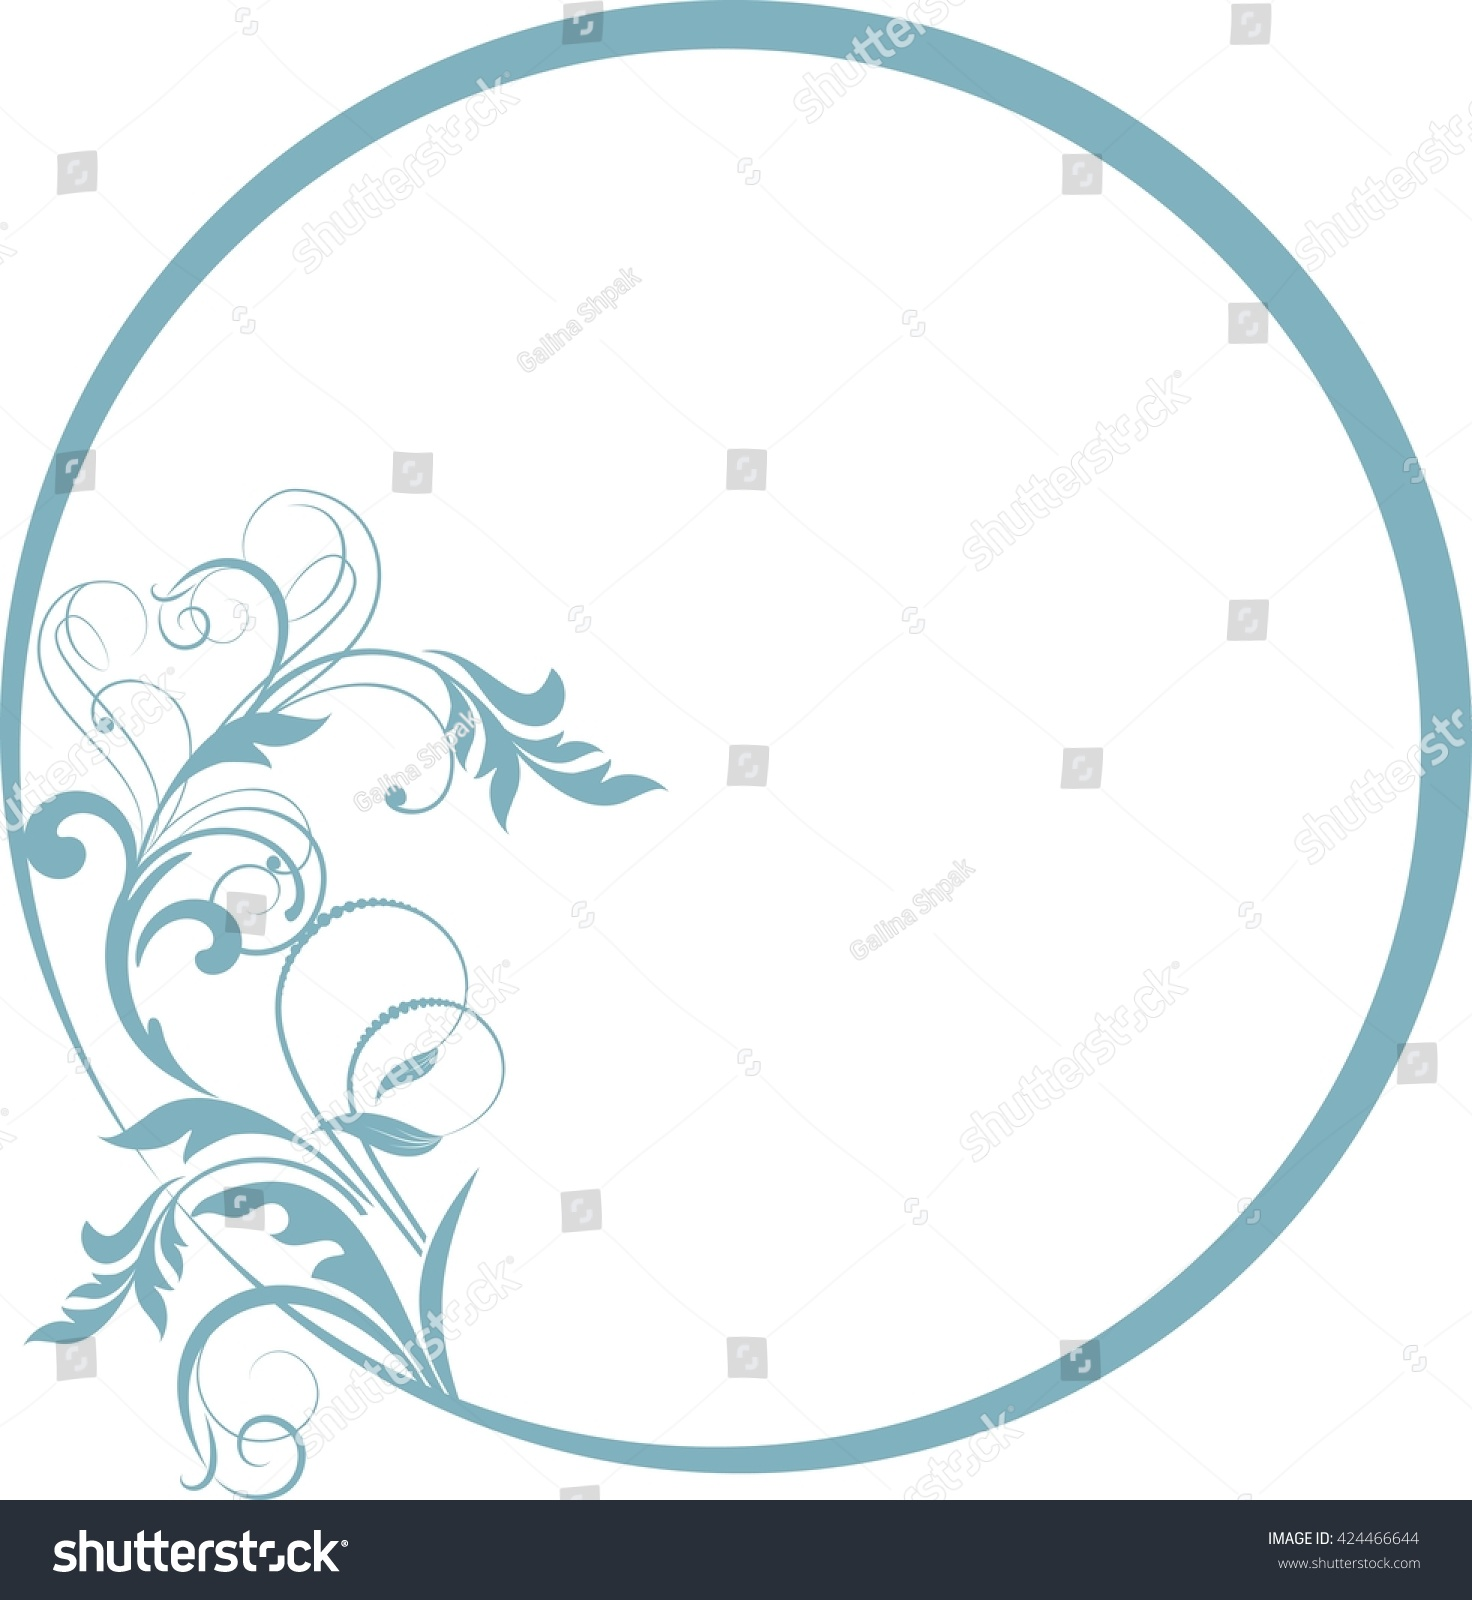 Round frame with decorative branch vector illustration stock - Round Frame With Decorative Branch Vector Illustration